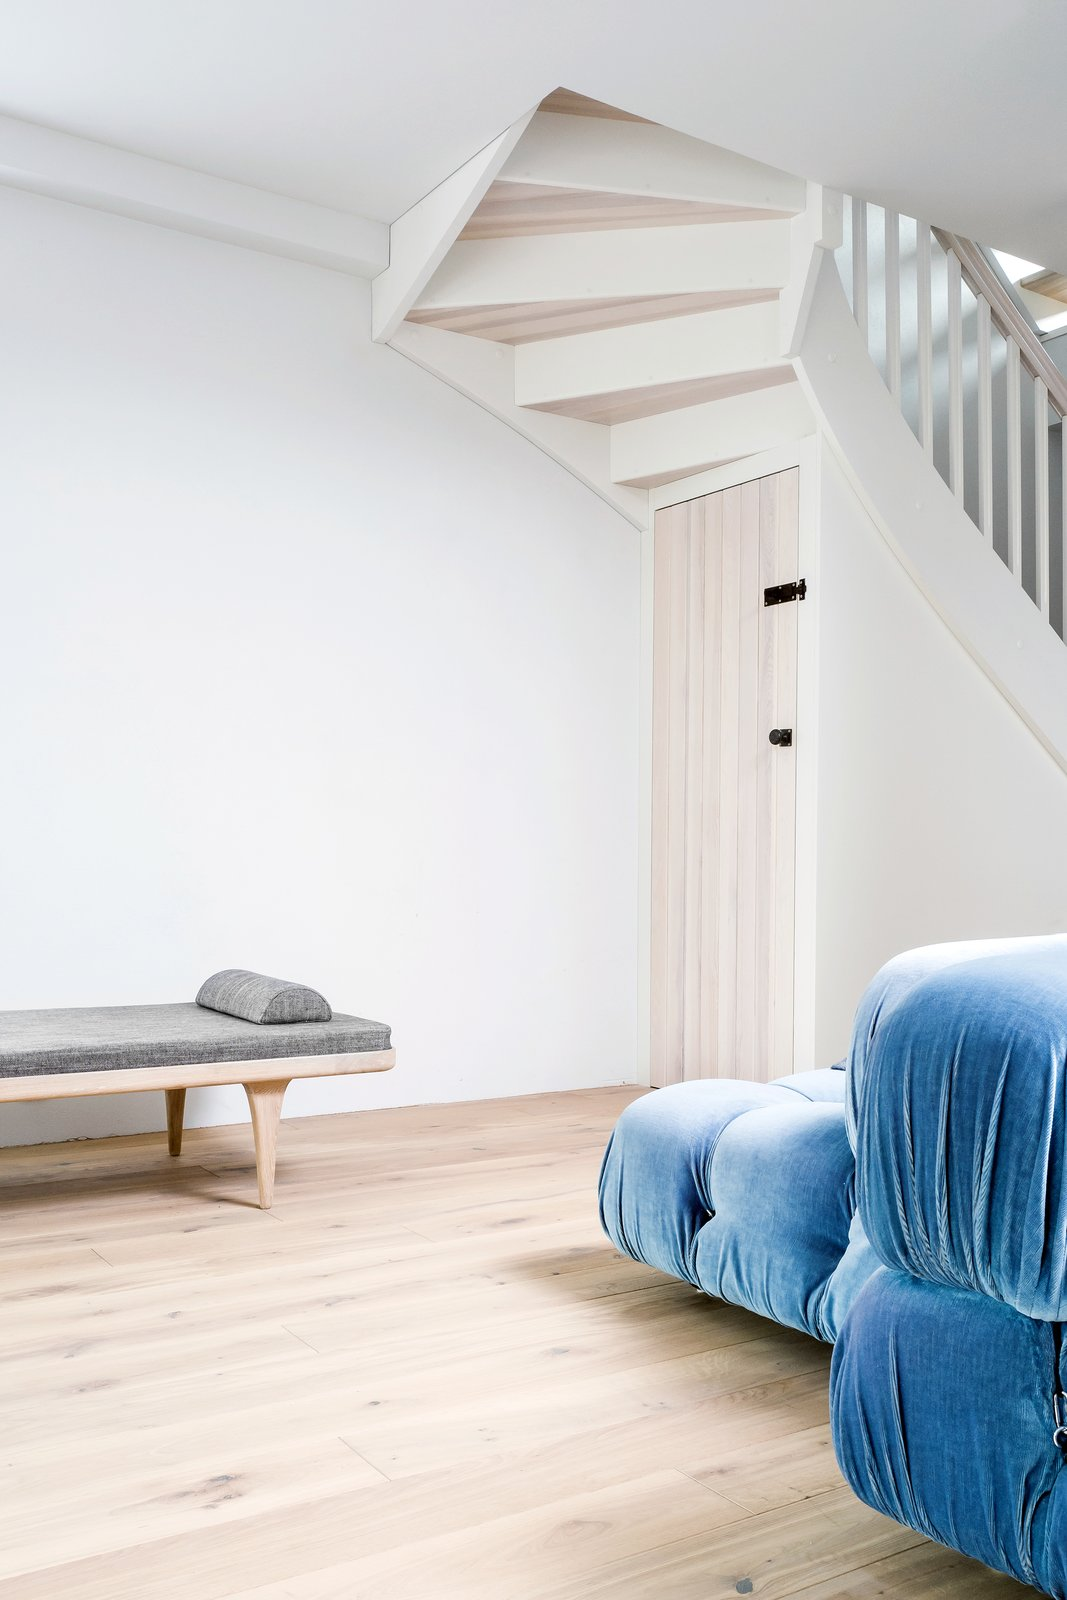 Photo 10 of 12 in A Family's Loft in Poland Gets a Minimalist Renovation That's Both Elegant and Functional